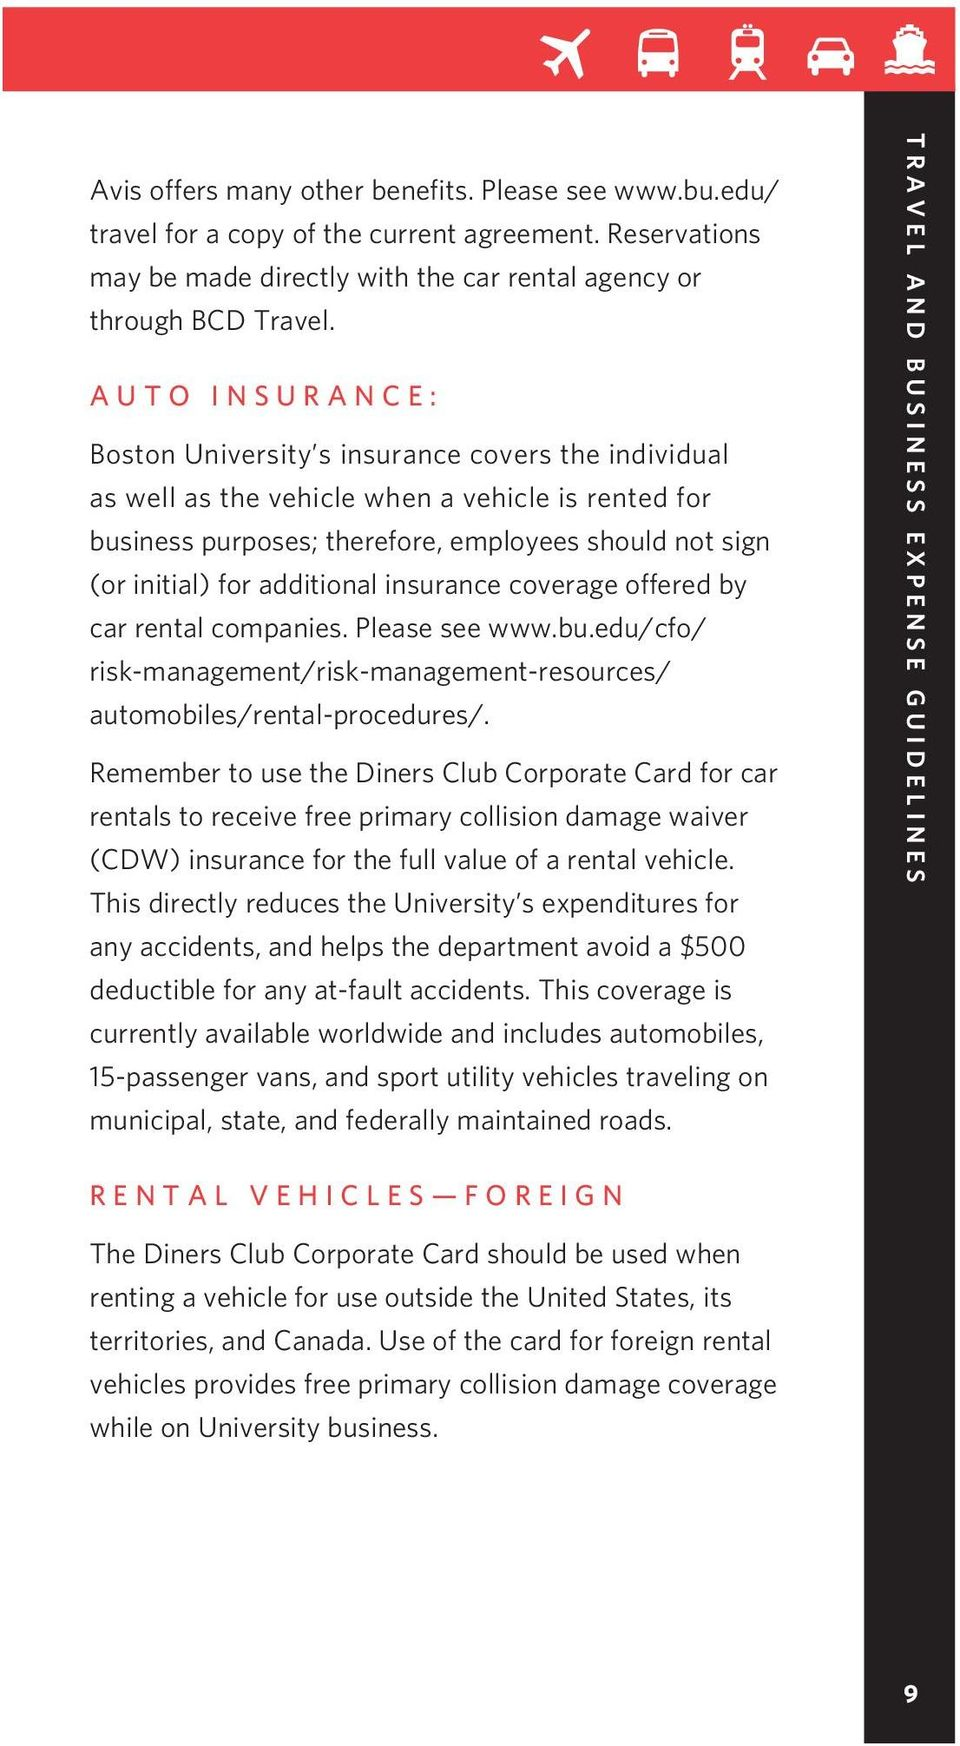 additional insurance coverage offered by car rental companies. Please see www.bu.edu/cfo/ risk-management/risk-management-resources/ automobiles/rental-procedures/.